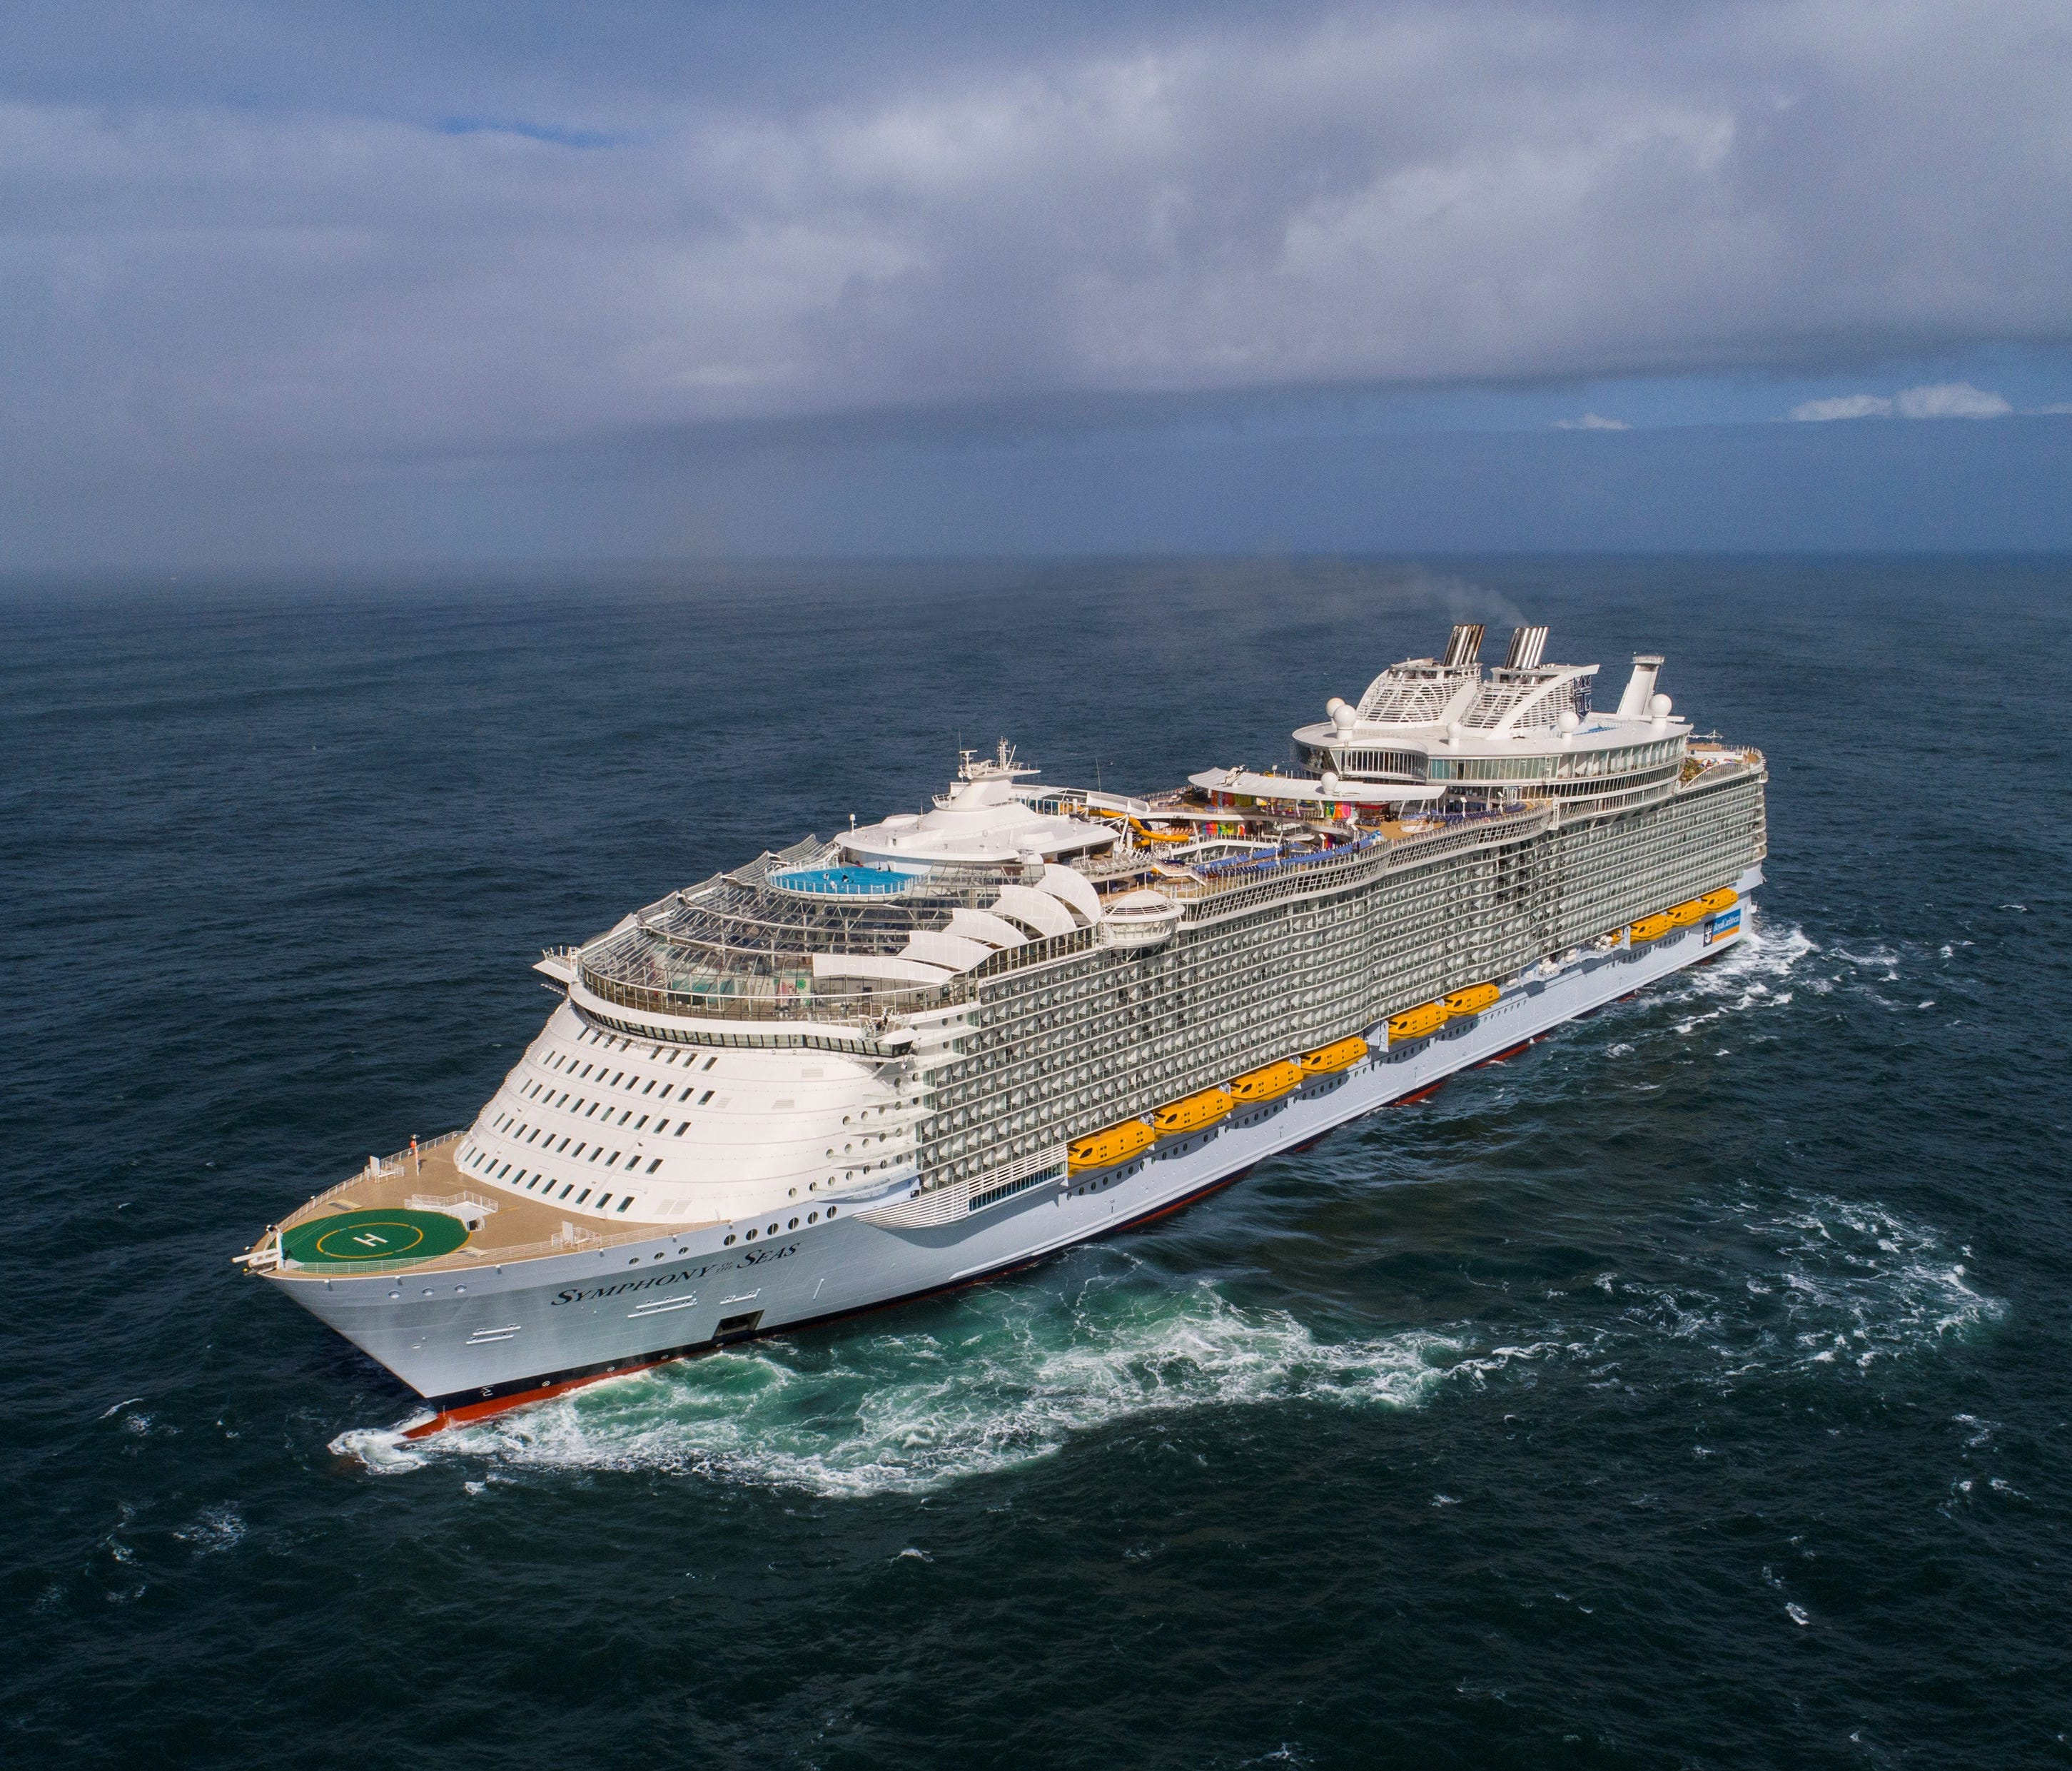 At 228,081 gross register tons, Royal Caribbean's Symphony of the Seas is the largest cruise ship ever built.